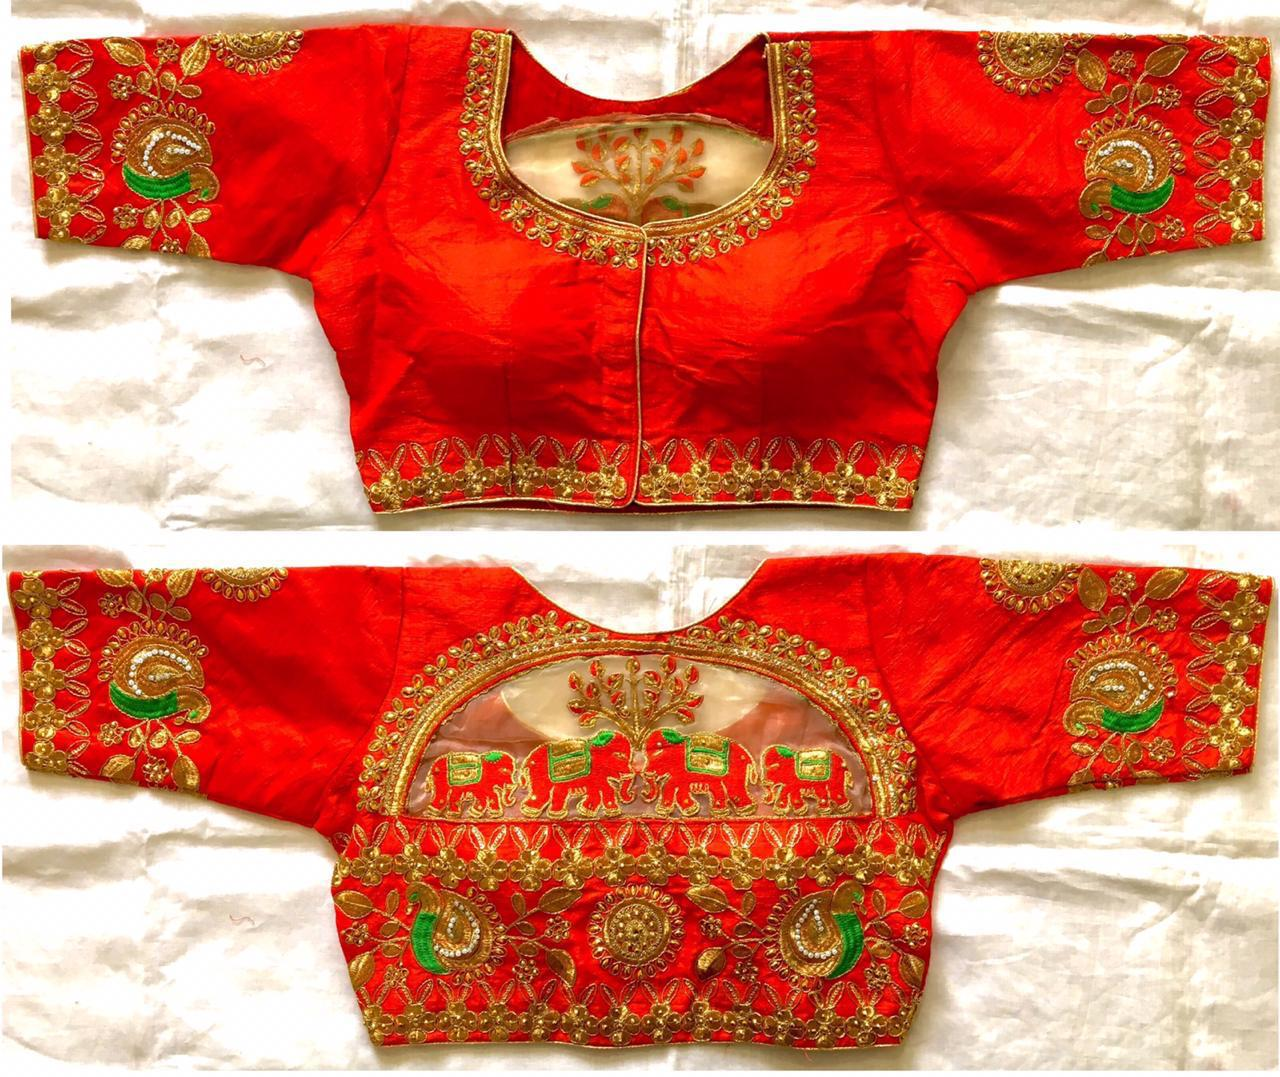 READYMADE DESIGNER BLOUSE WHOLESALE IN INDIA